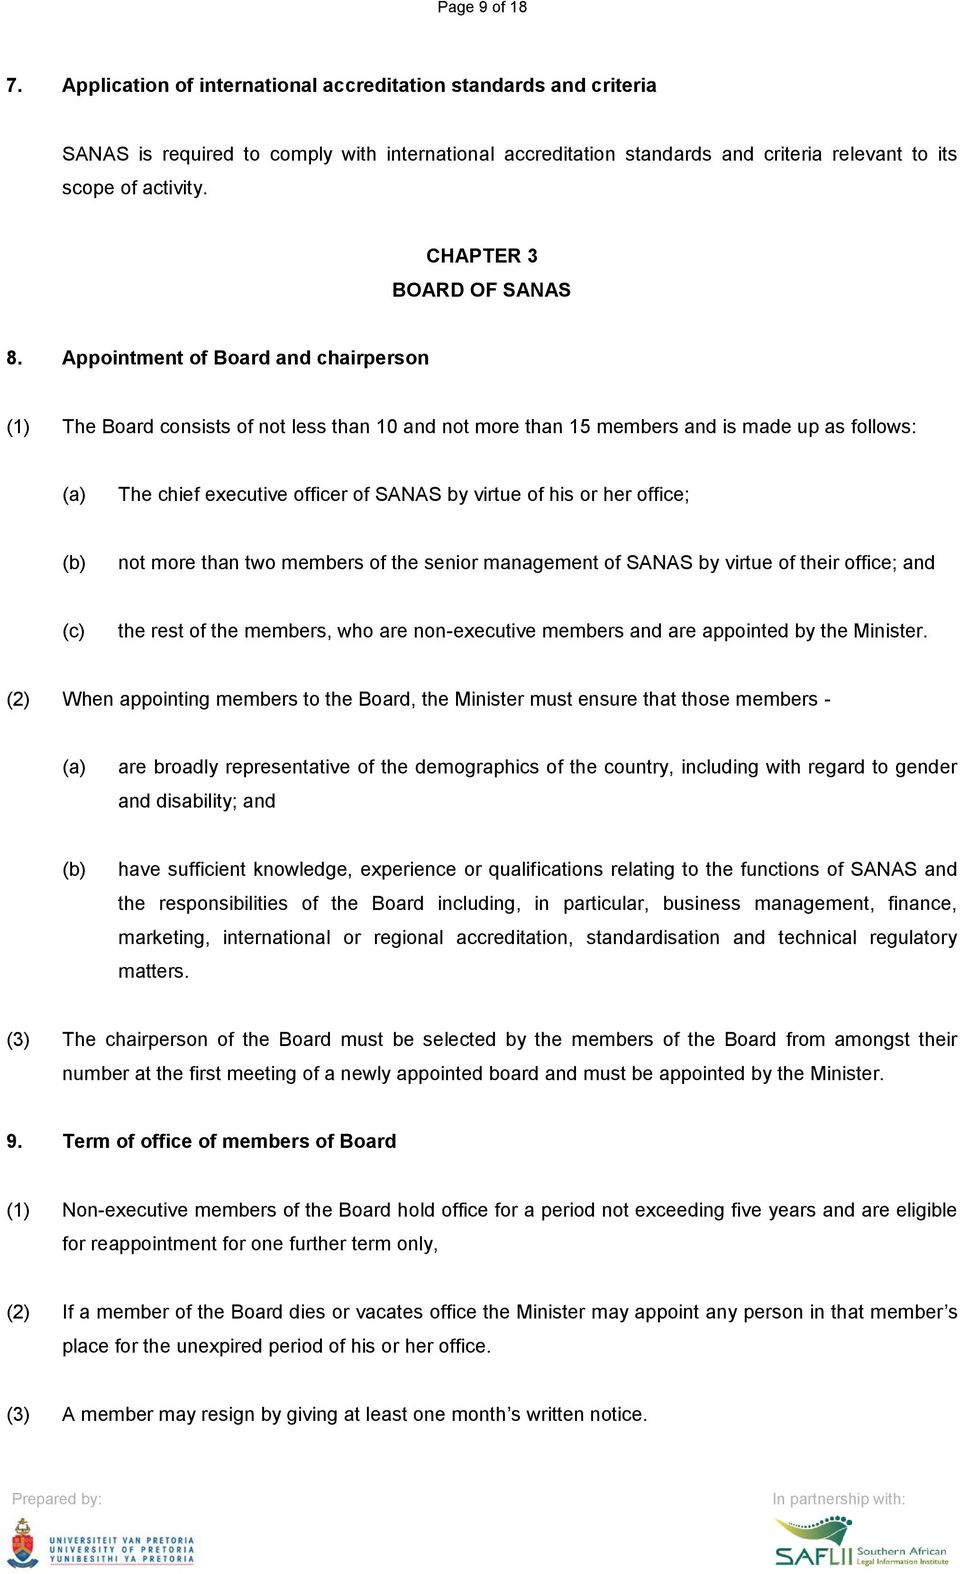 Appointment of Board and chairperson (1) The Board consists of not less than 10 and not more than 15 members and is made up as follows: The chief executive officer of SANAS by virtue of his or her